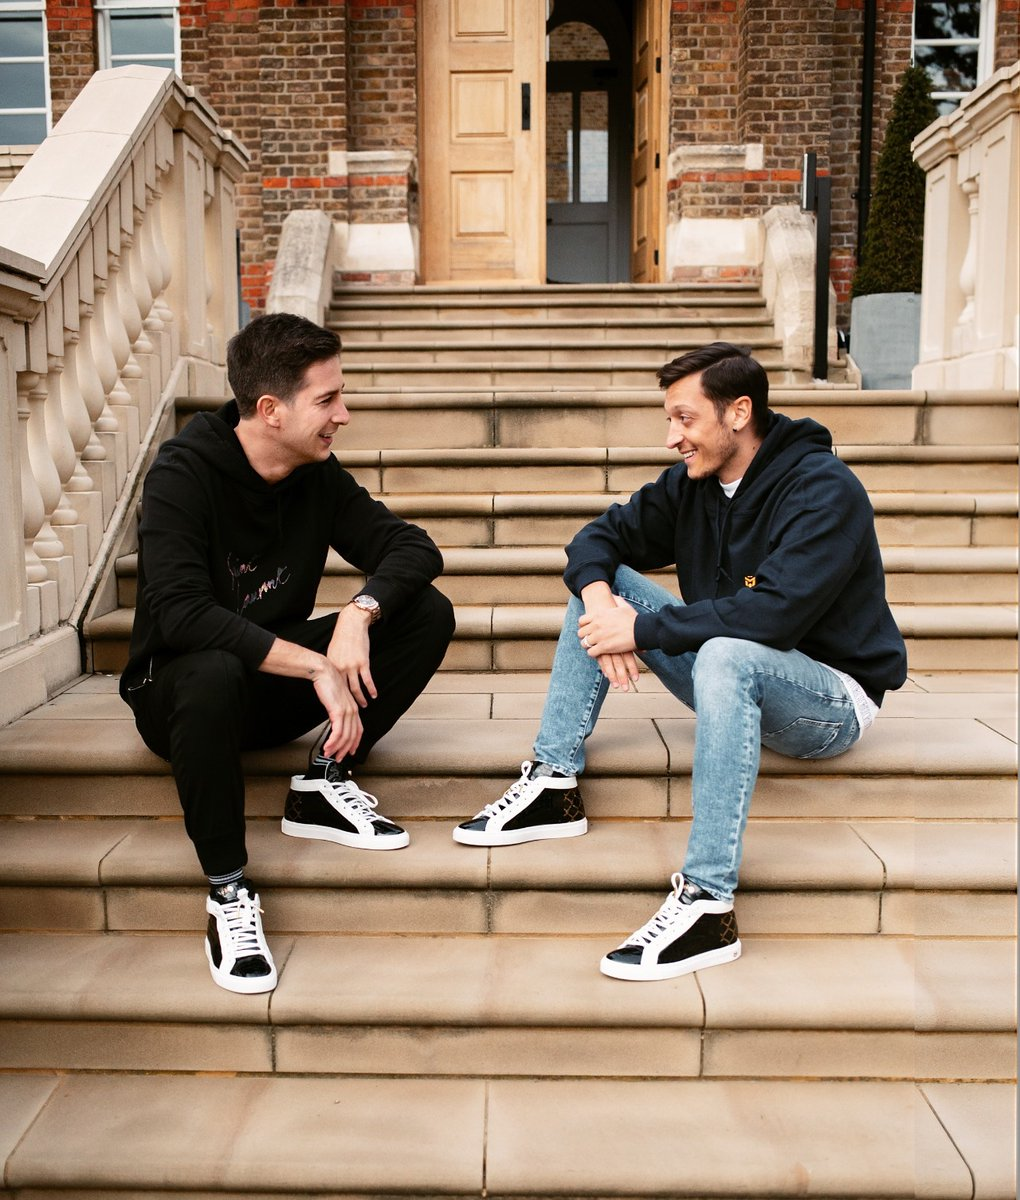 'The Cage' is now available for preorder on the @hideandjack website🔥👟 It was designed to celebrate my childhood & personal story. All the profits will be donated to help children affected by the Covid-19 crisis in Italy in order to have access to digital education. 🙏🏼